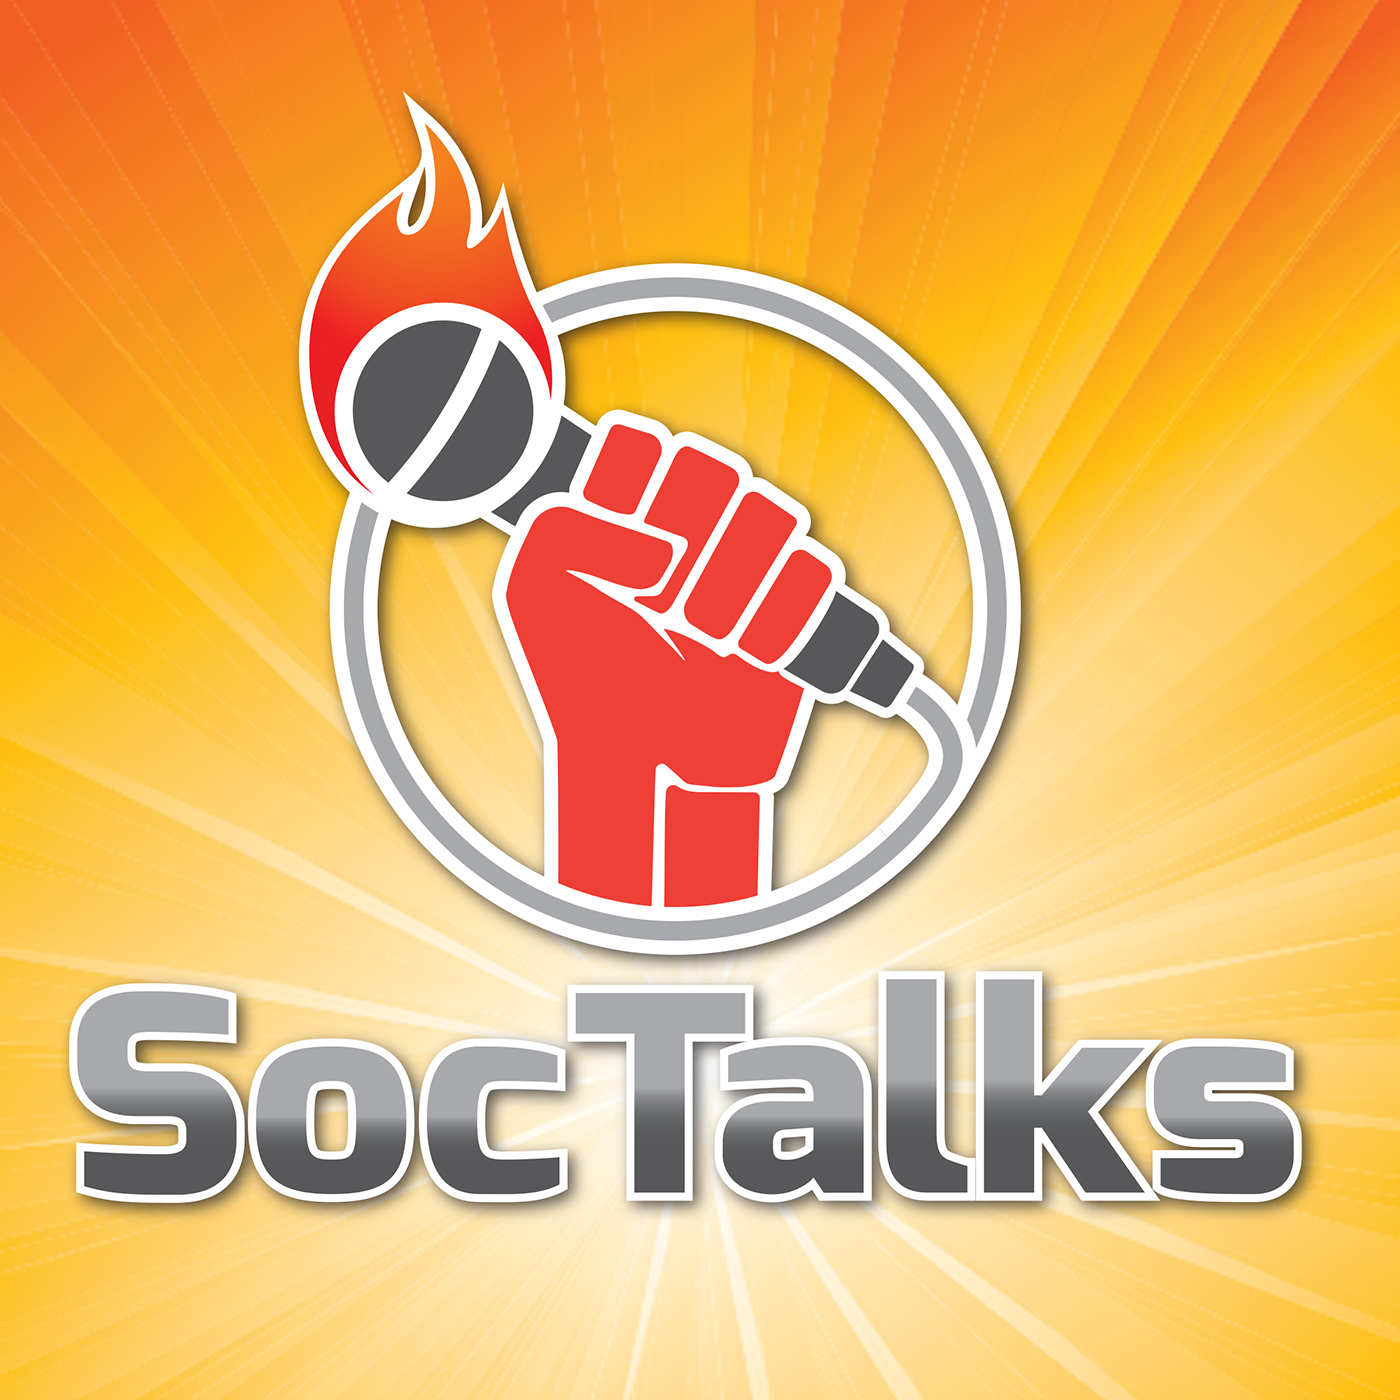 SocTalks Episode 024 Season 2 show art